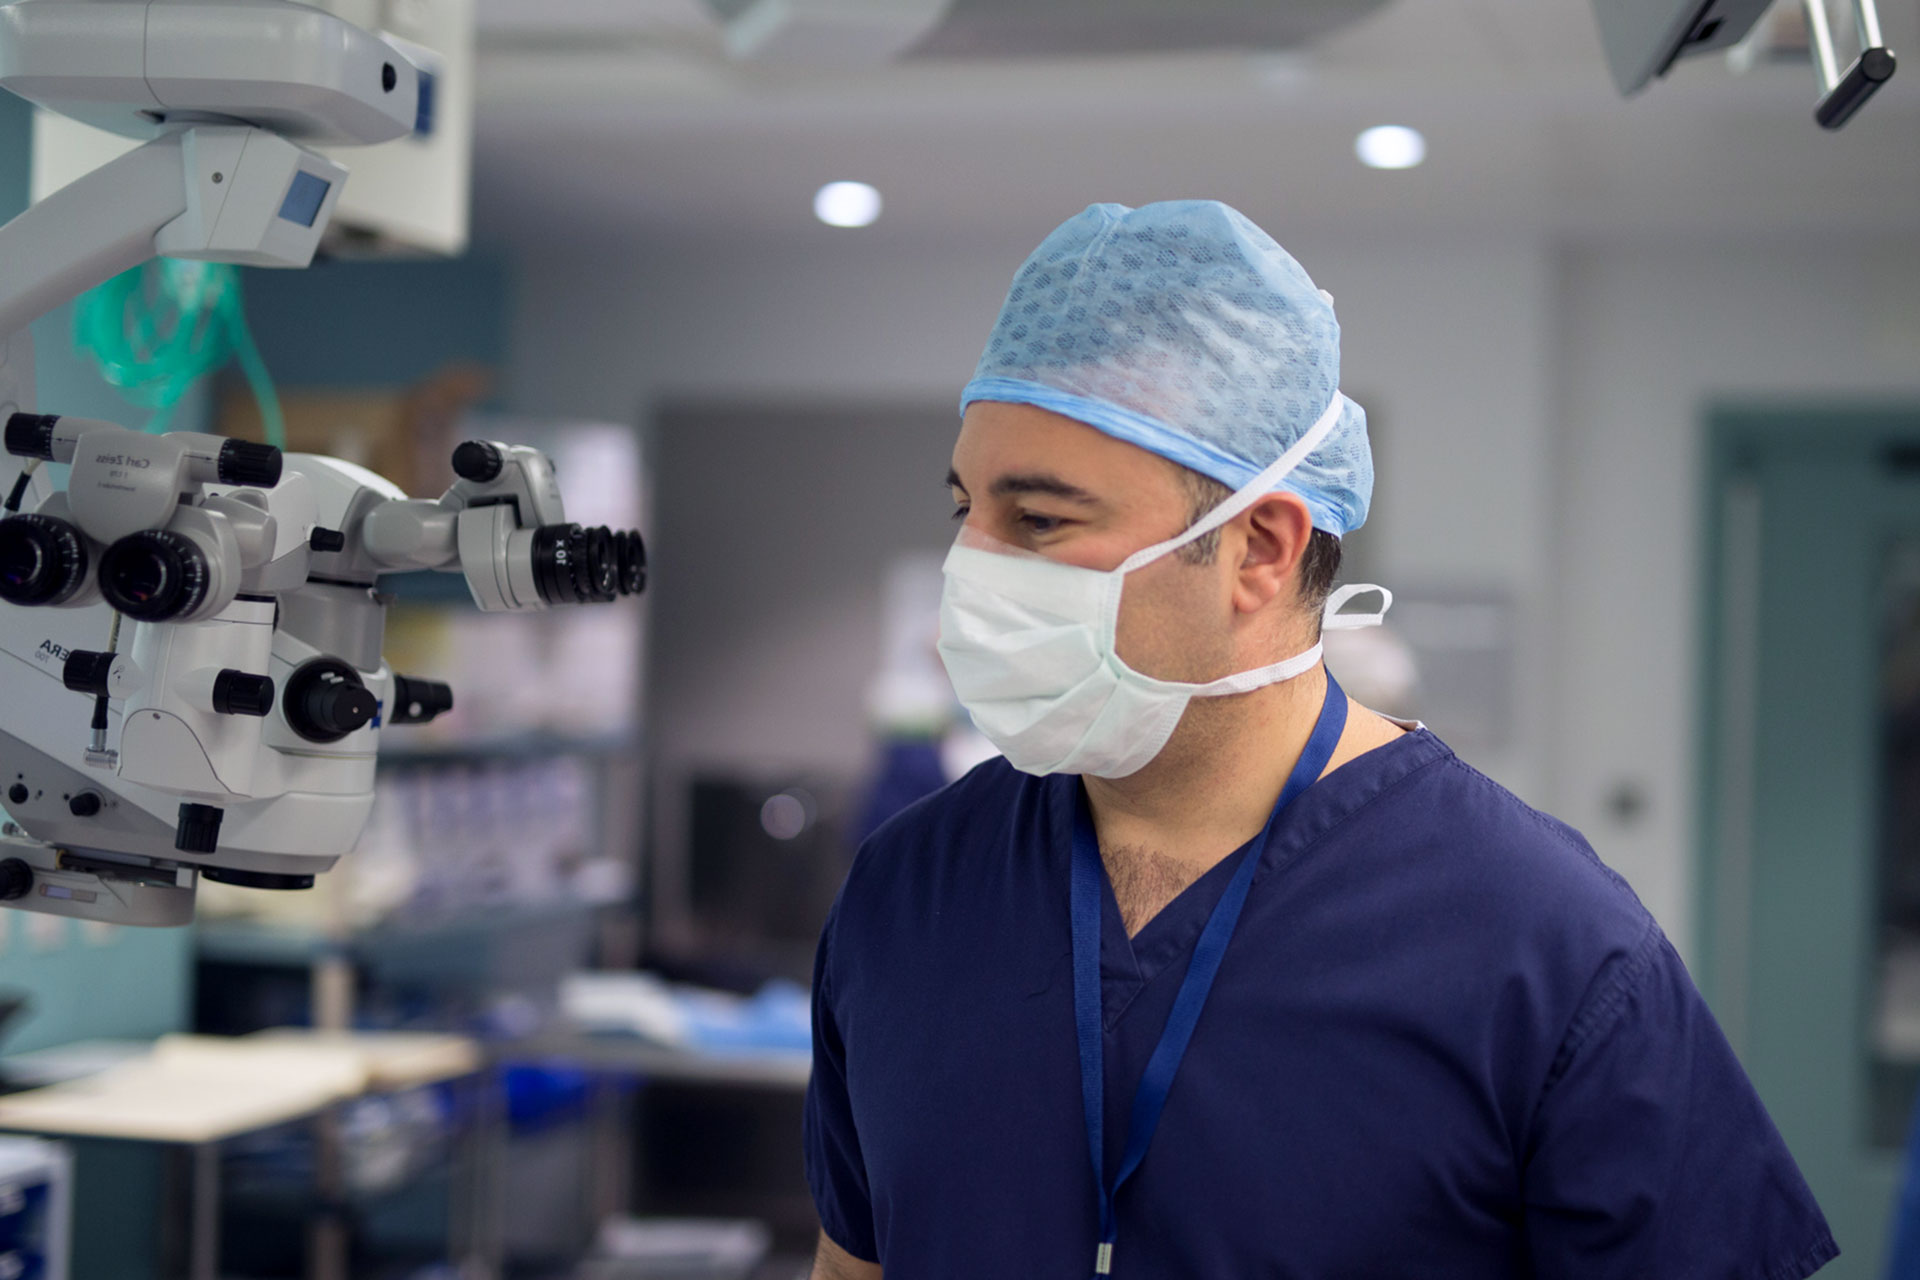 Dr Ali Mearza operating